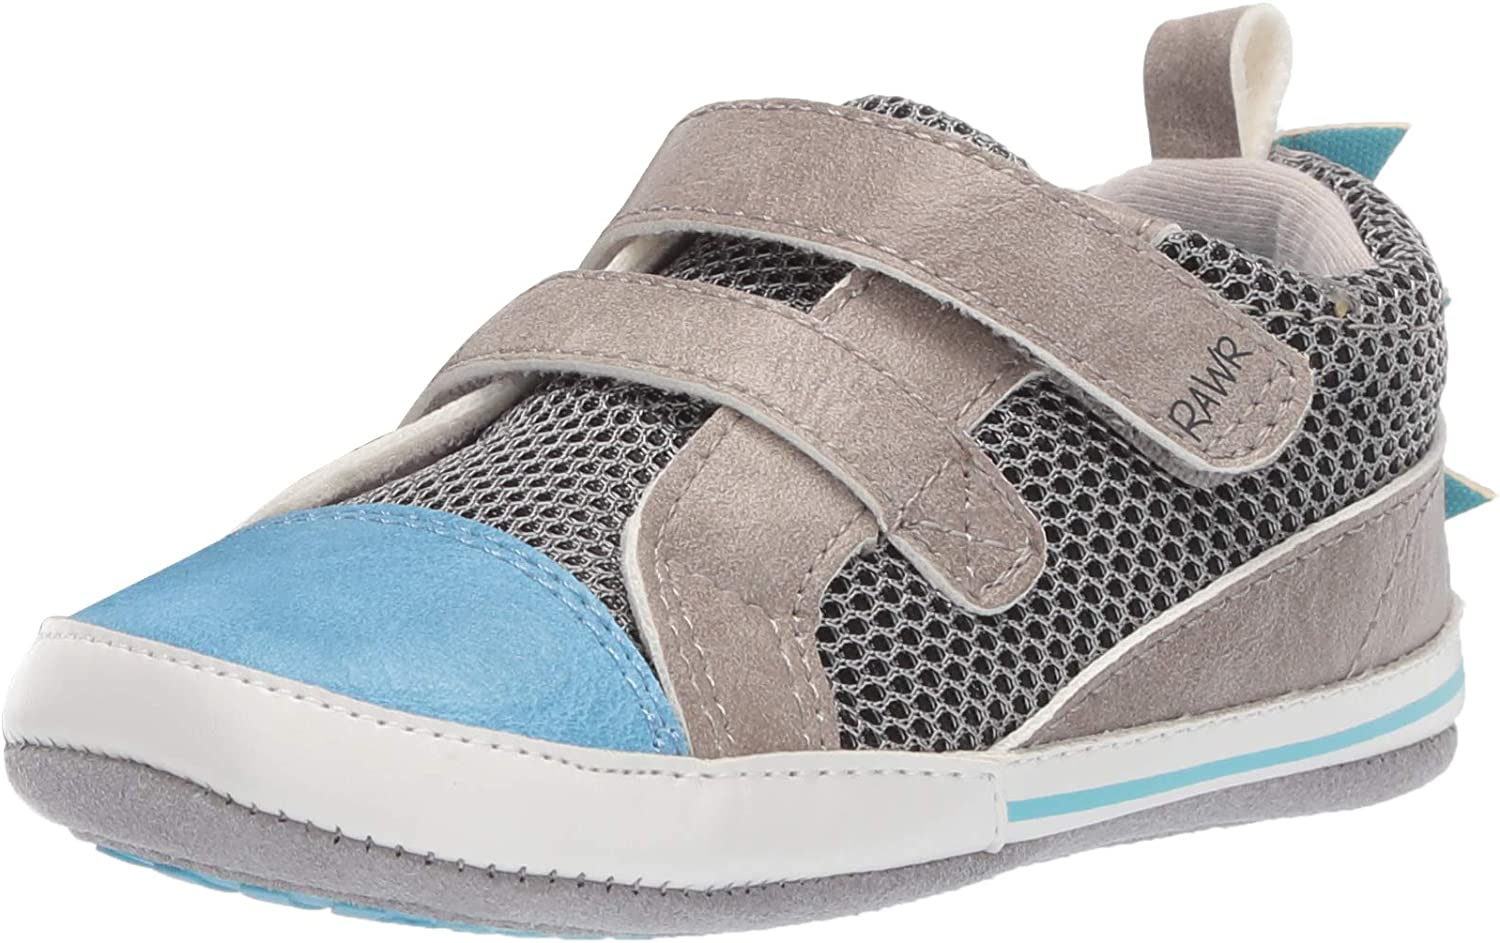 Ro Me By Robeez Boys Dinosaur Sneaker Crib Shoe Light Blue 18 24 Months Amazon Ca Shoes Handbags